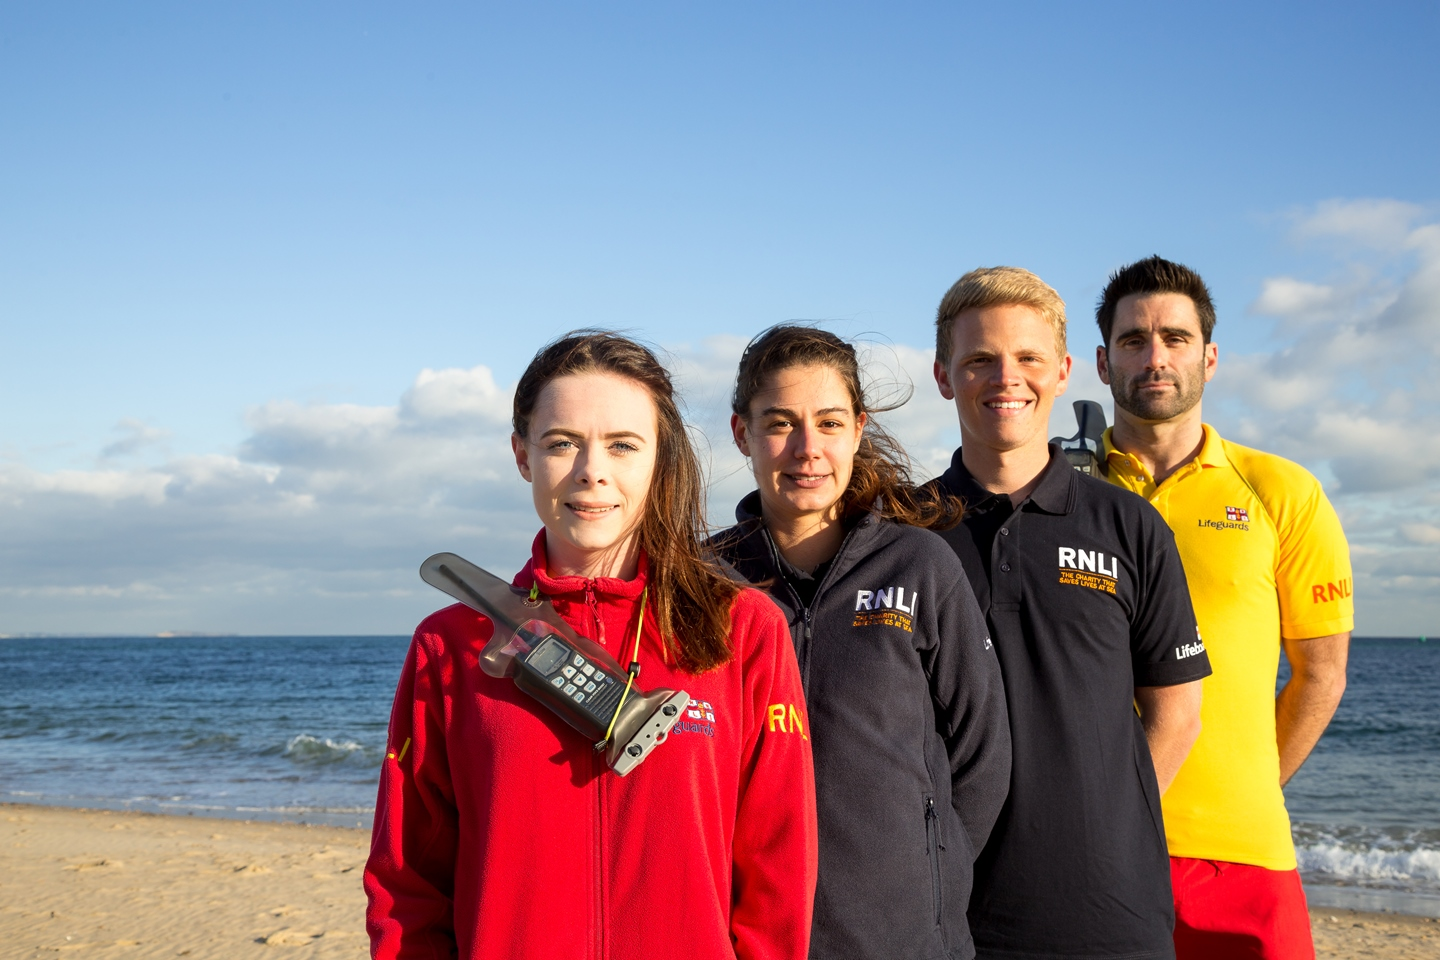 Lifeguards and face to face fundraisers together on the beach